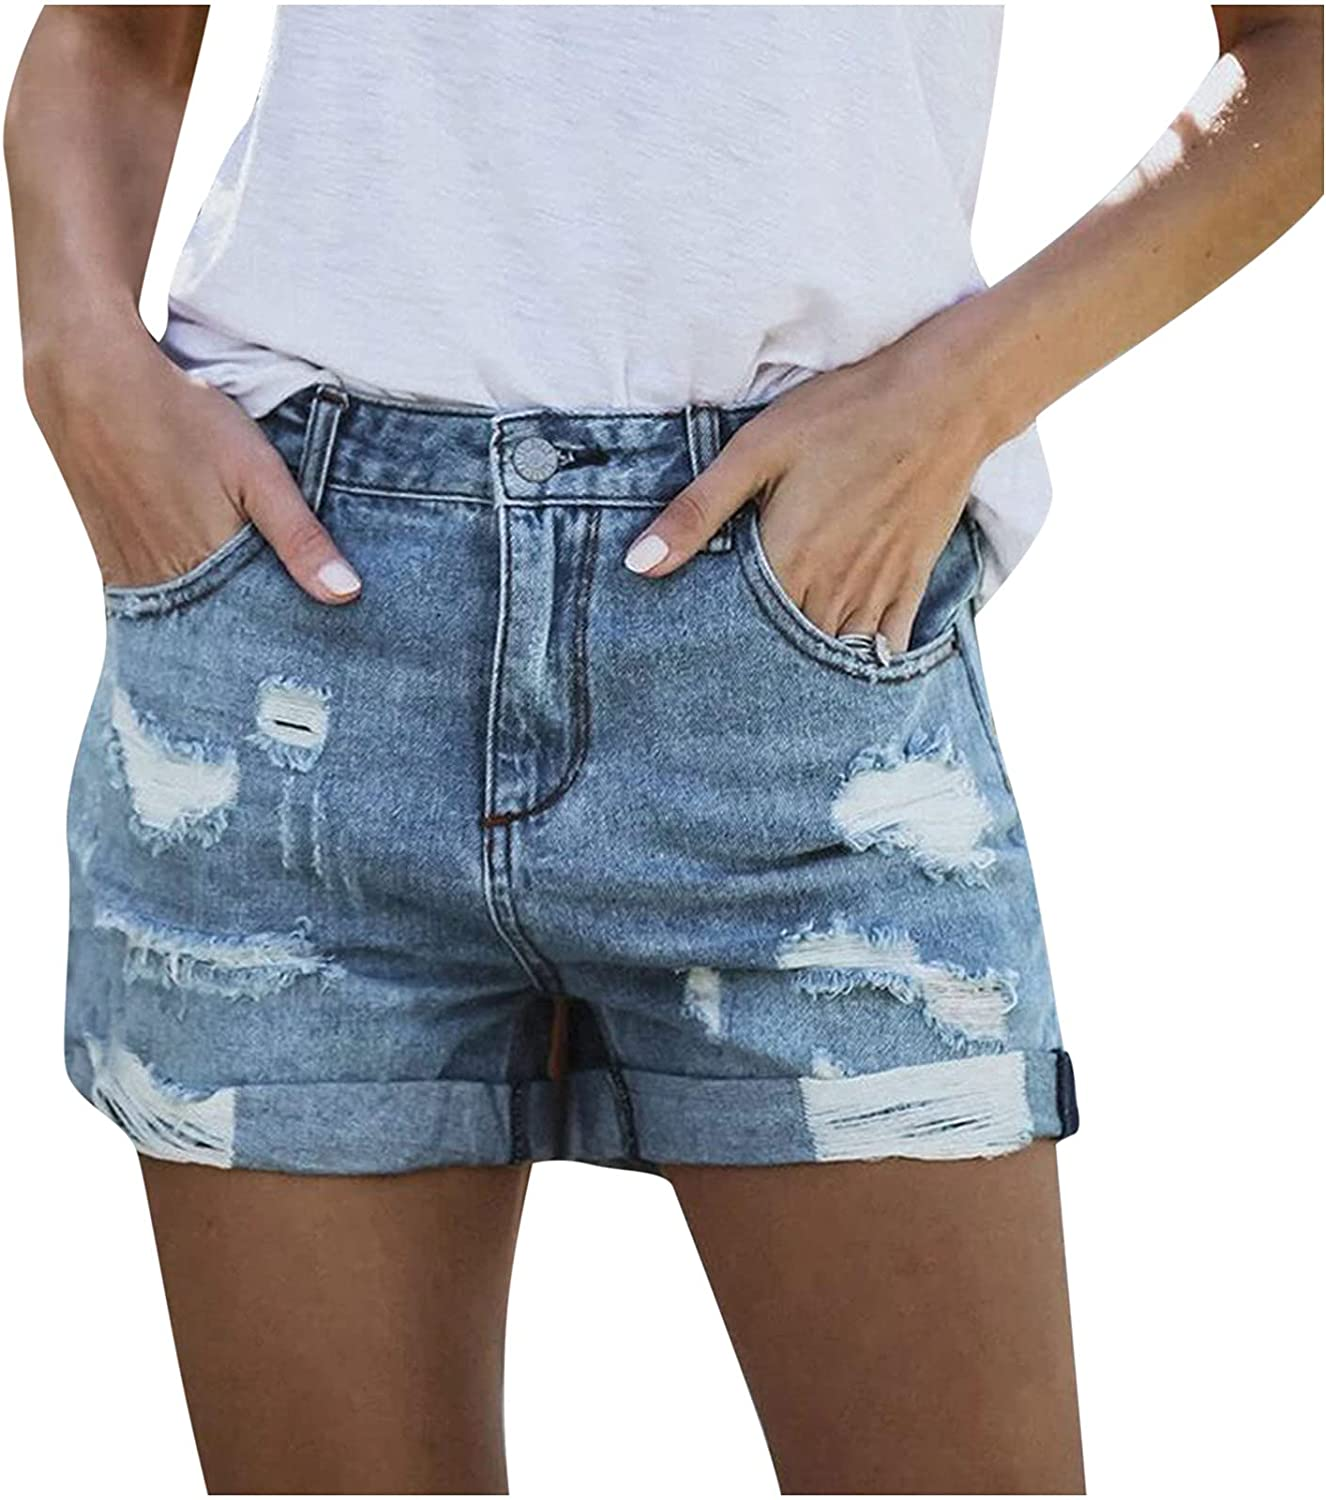 Denim Hot Shorts for Women Casual Summer Cut Off Frayed Distressed Jean Short Mid Rise Ripped Denim Shorts